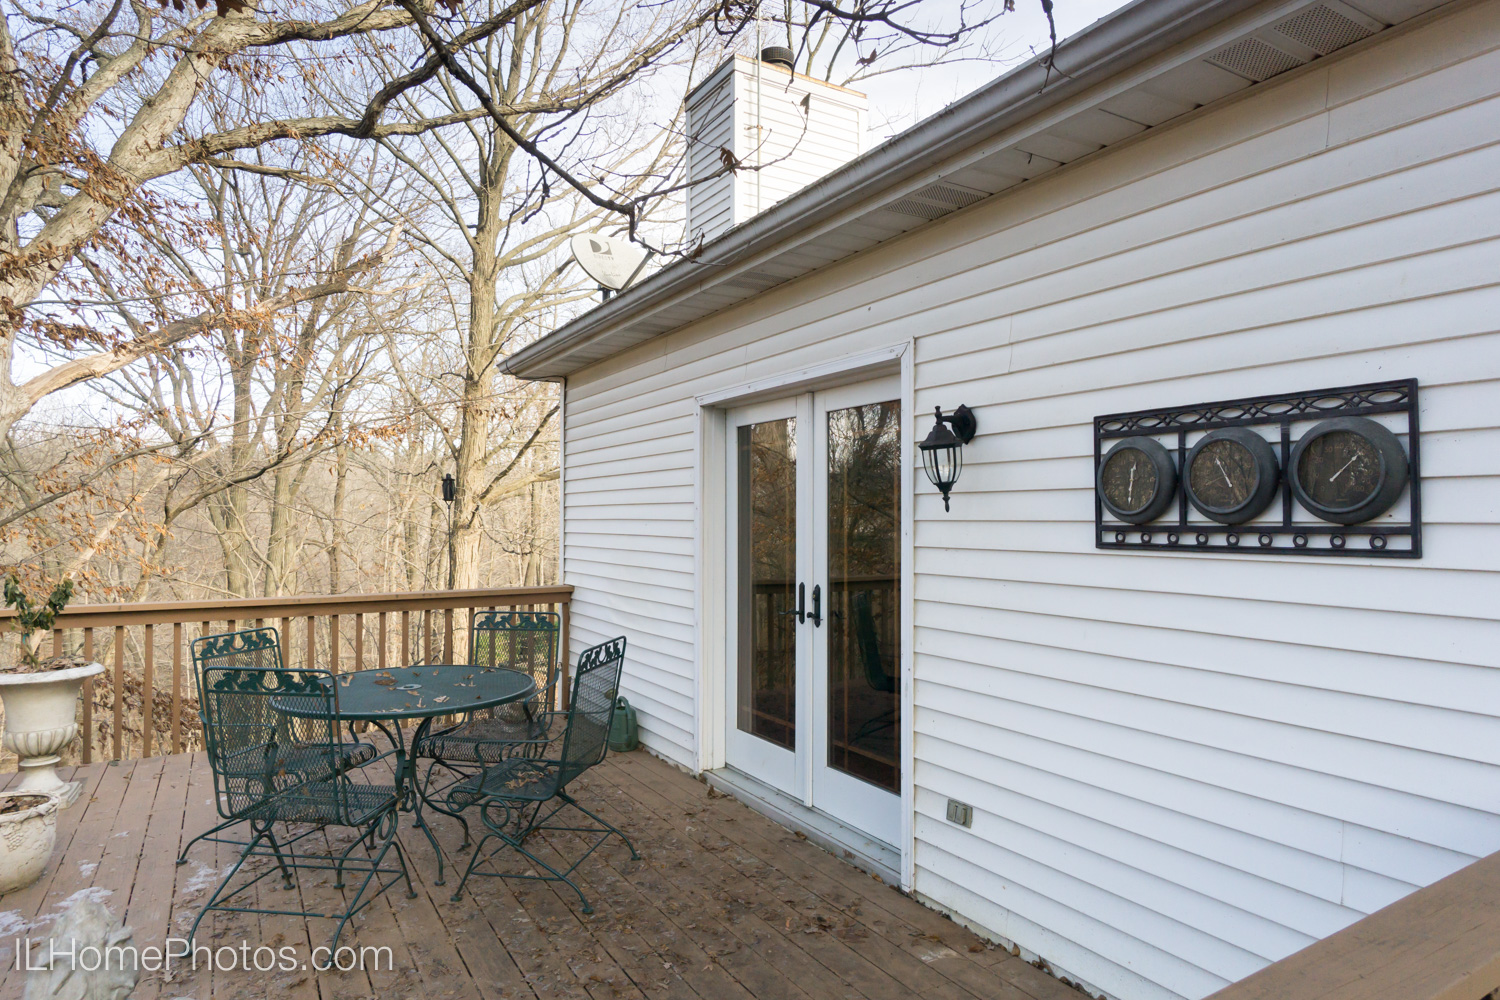 Exterior back porch and deck photograph for real estate in Dunlap, IL :: Illinois Home Photography by Michael Gowin, Lincoln, IL